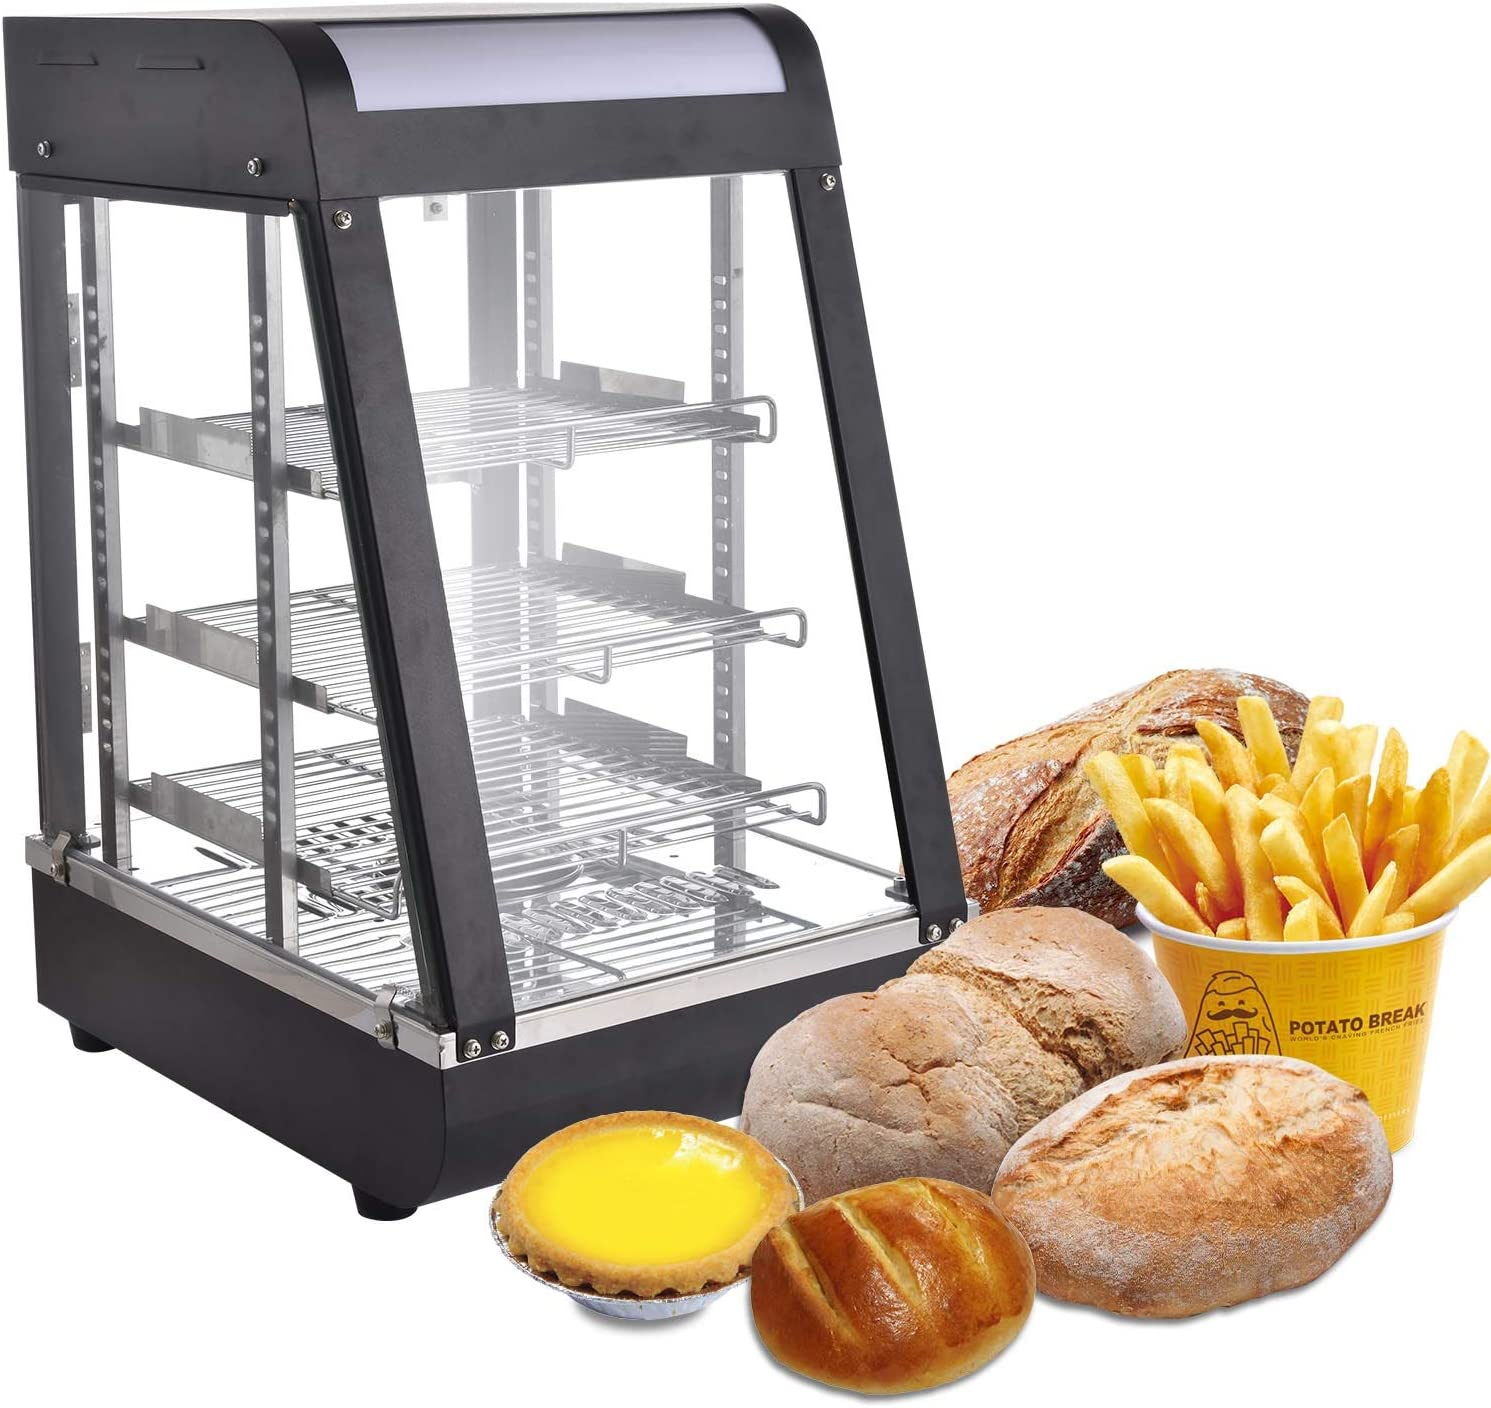 Peitten 15 inch Commercial Food Warmer   Food Countertop Heated Cabinet   Stainless Steel Display Showcase with 3 Tier Shelves for Catering Restaurant Pizza Empanda Pastry Patty (Food Warmer, 15 inch)